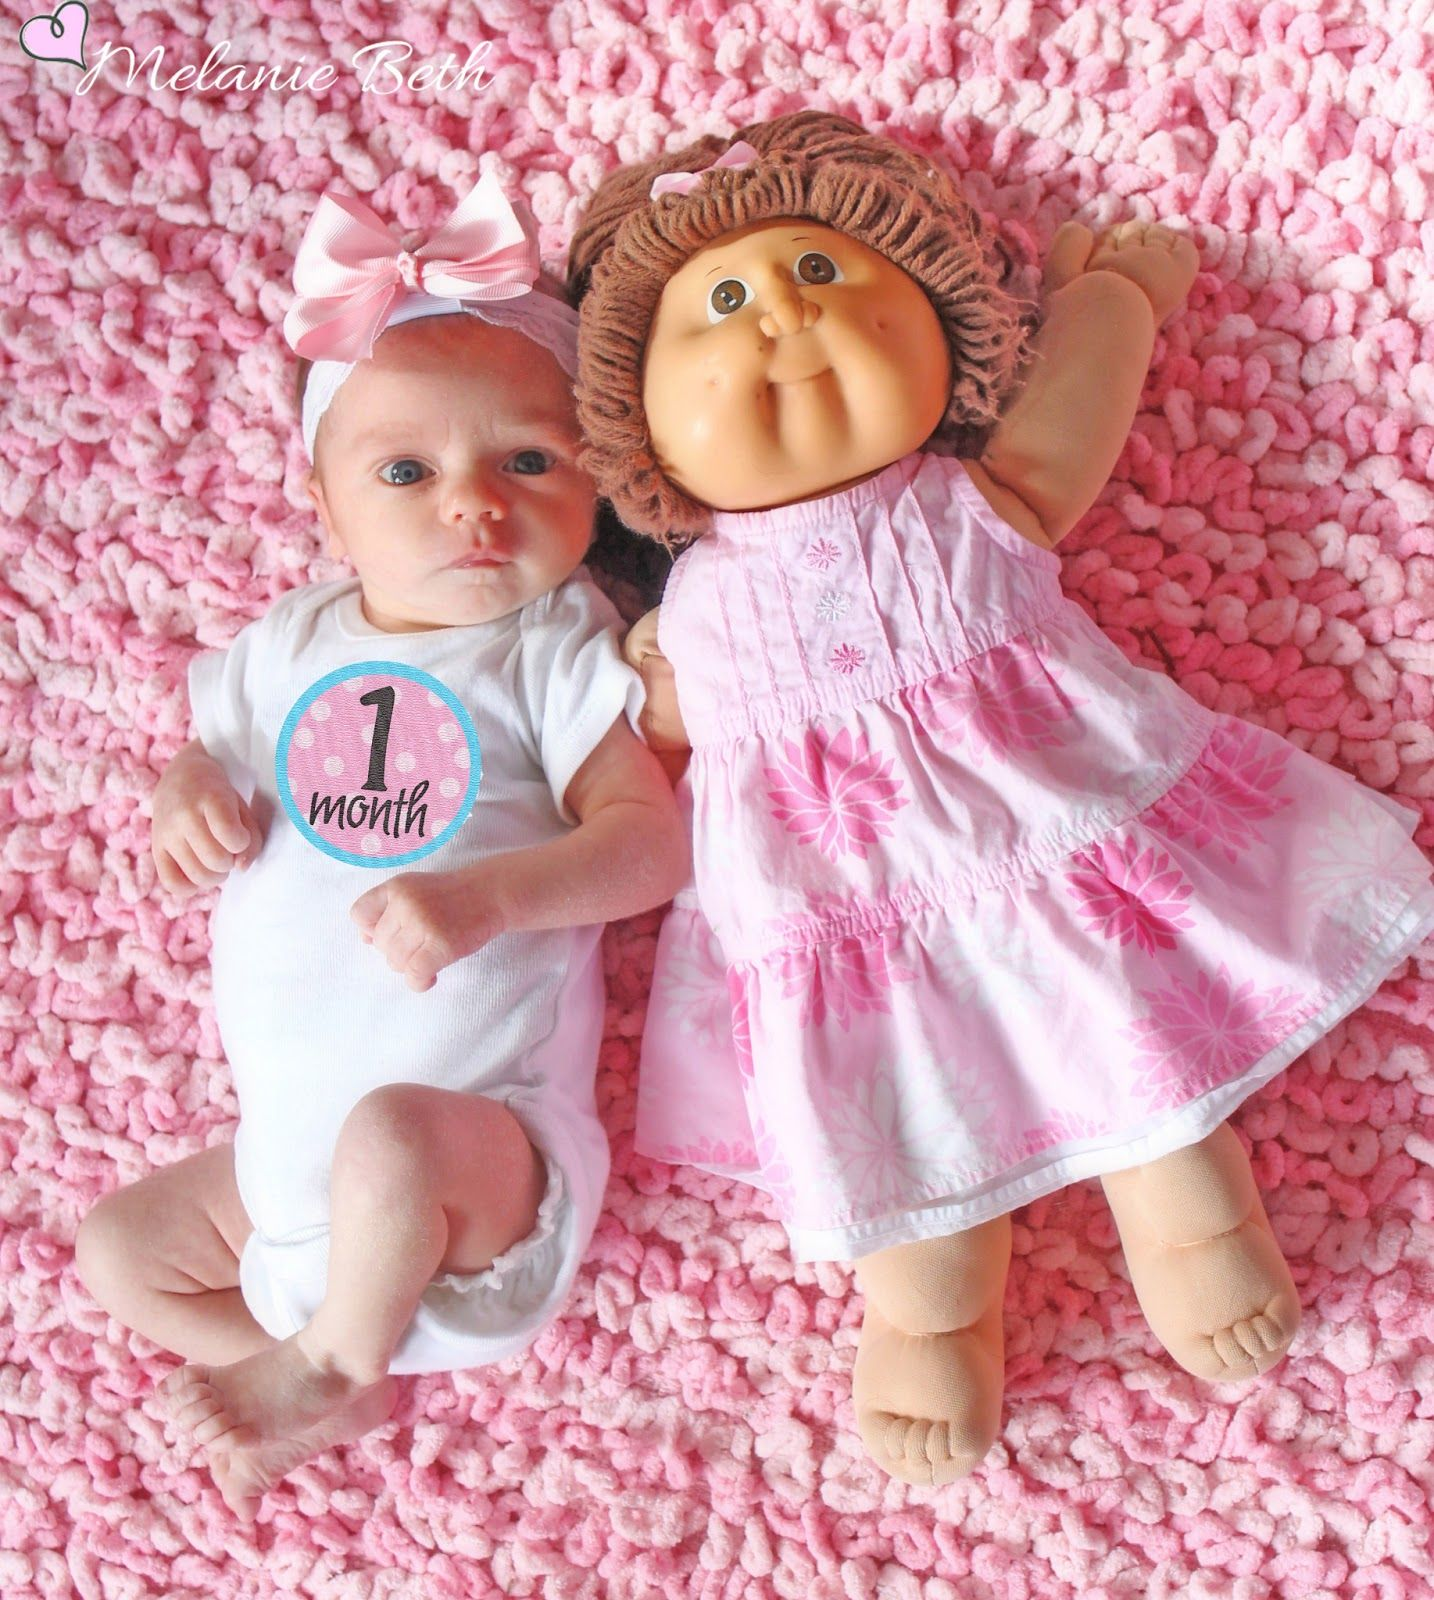 Monthly pics next to the same doll to compare baby's growth